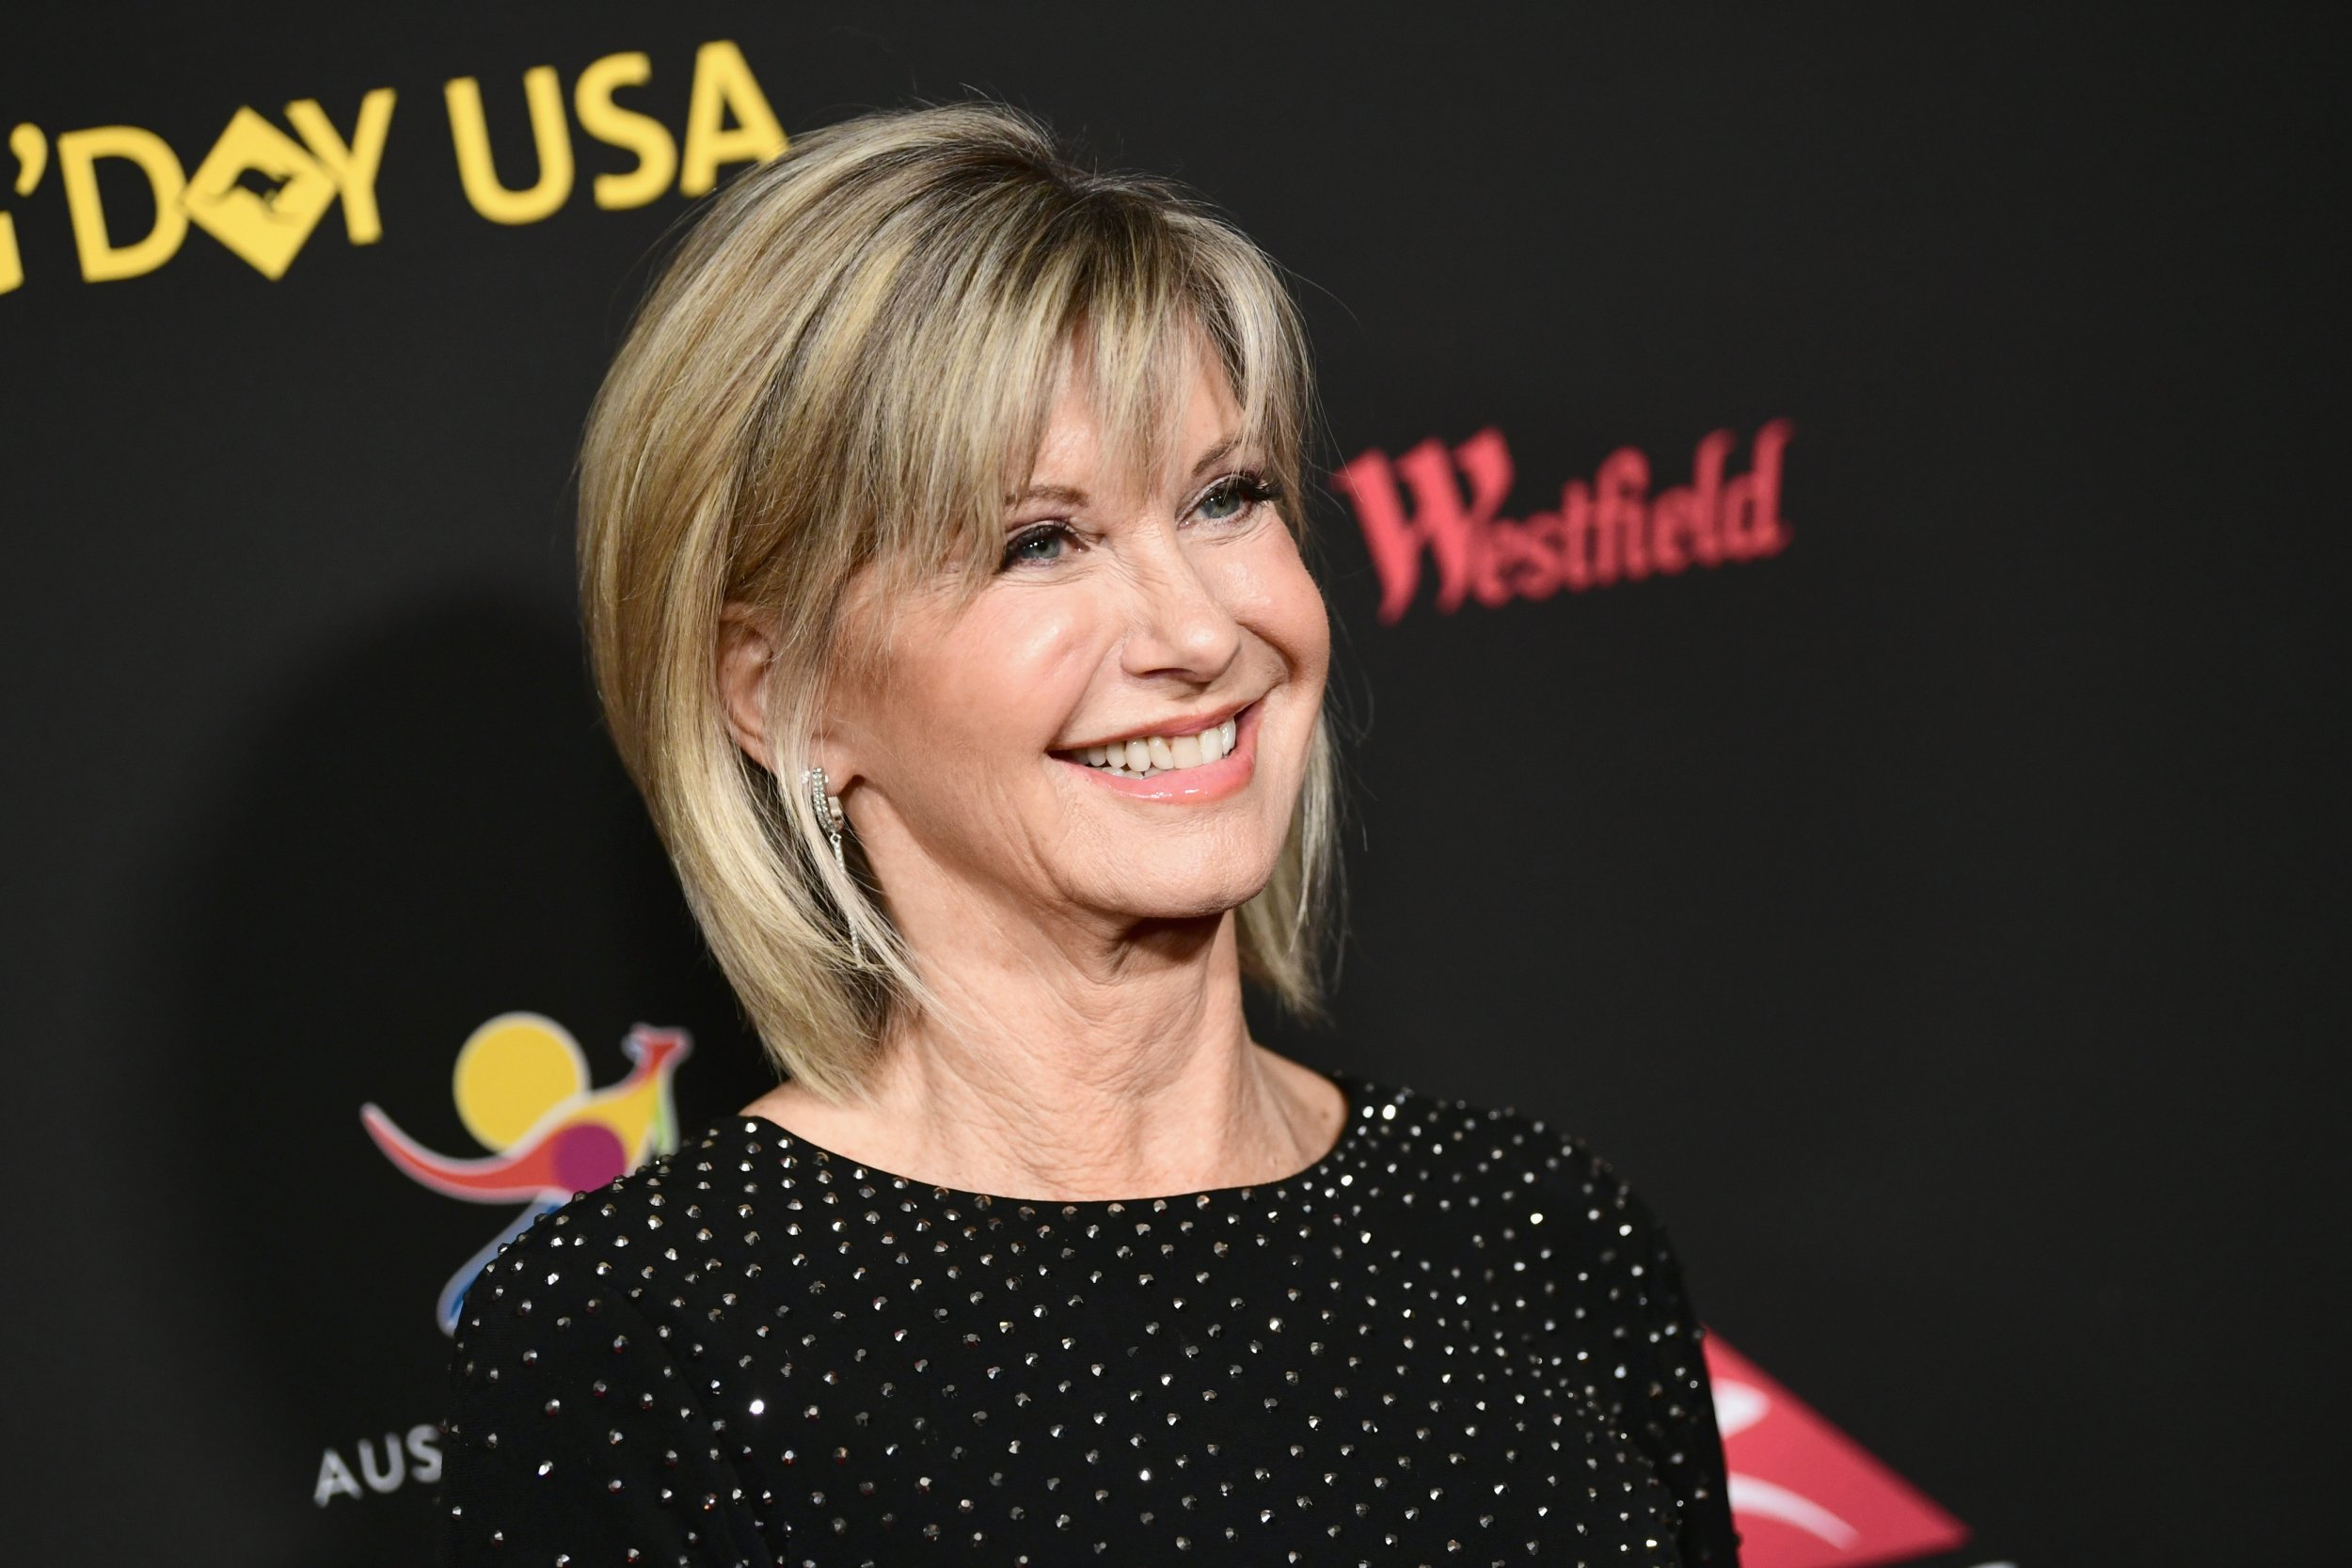 Olivia Newton-John Death Rumors Denied